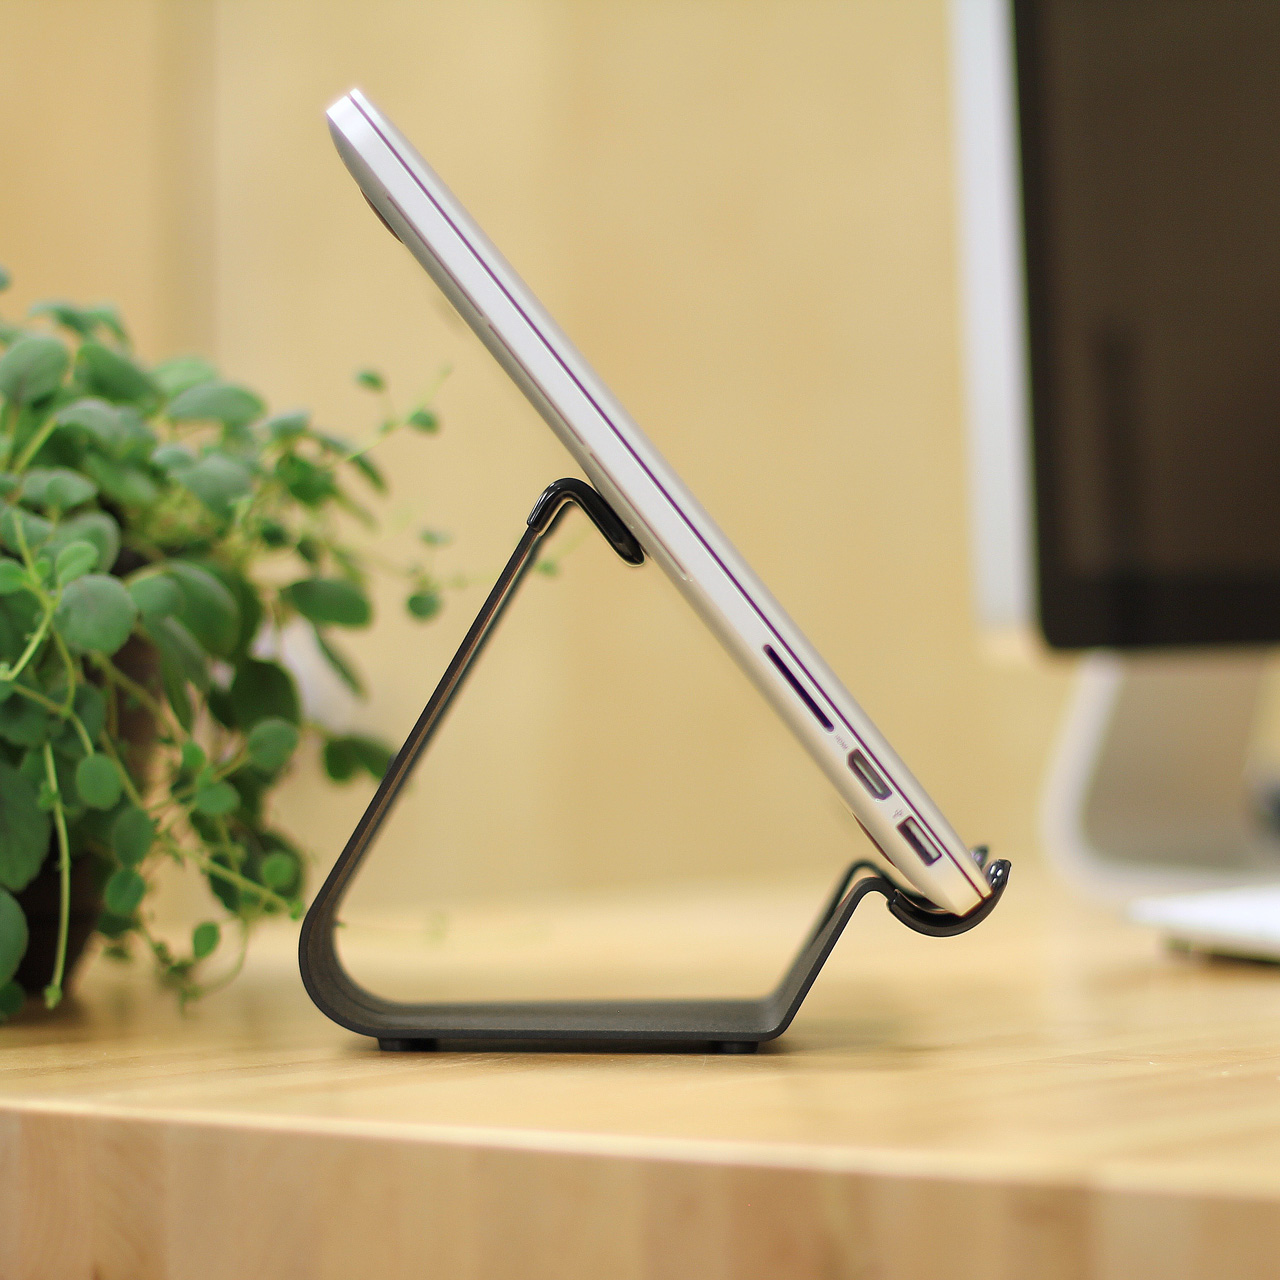 Laptop Stand - 15 Inch Laptops & Smaller - All MacBook Pro, MacBook, MacBook Air & More